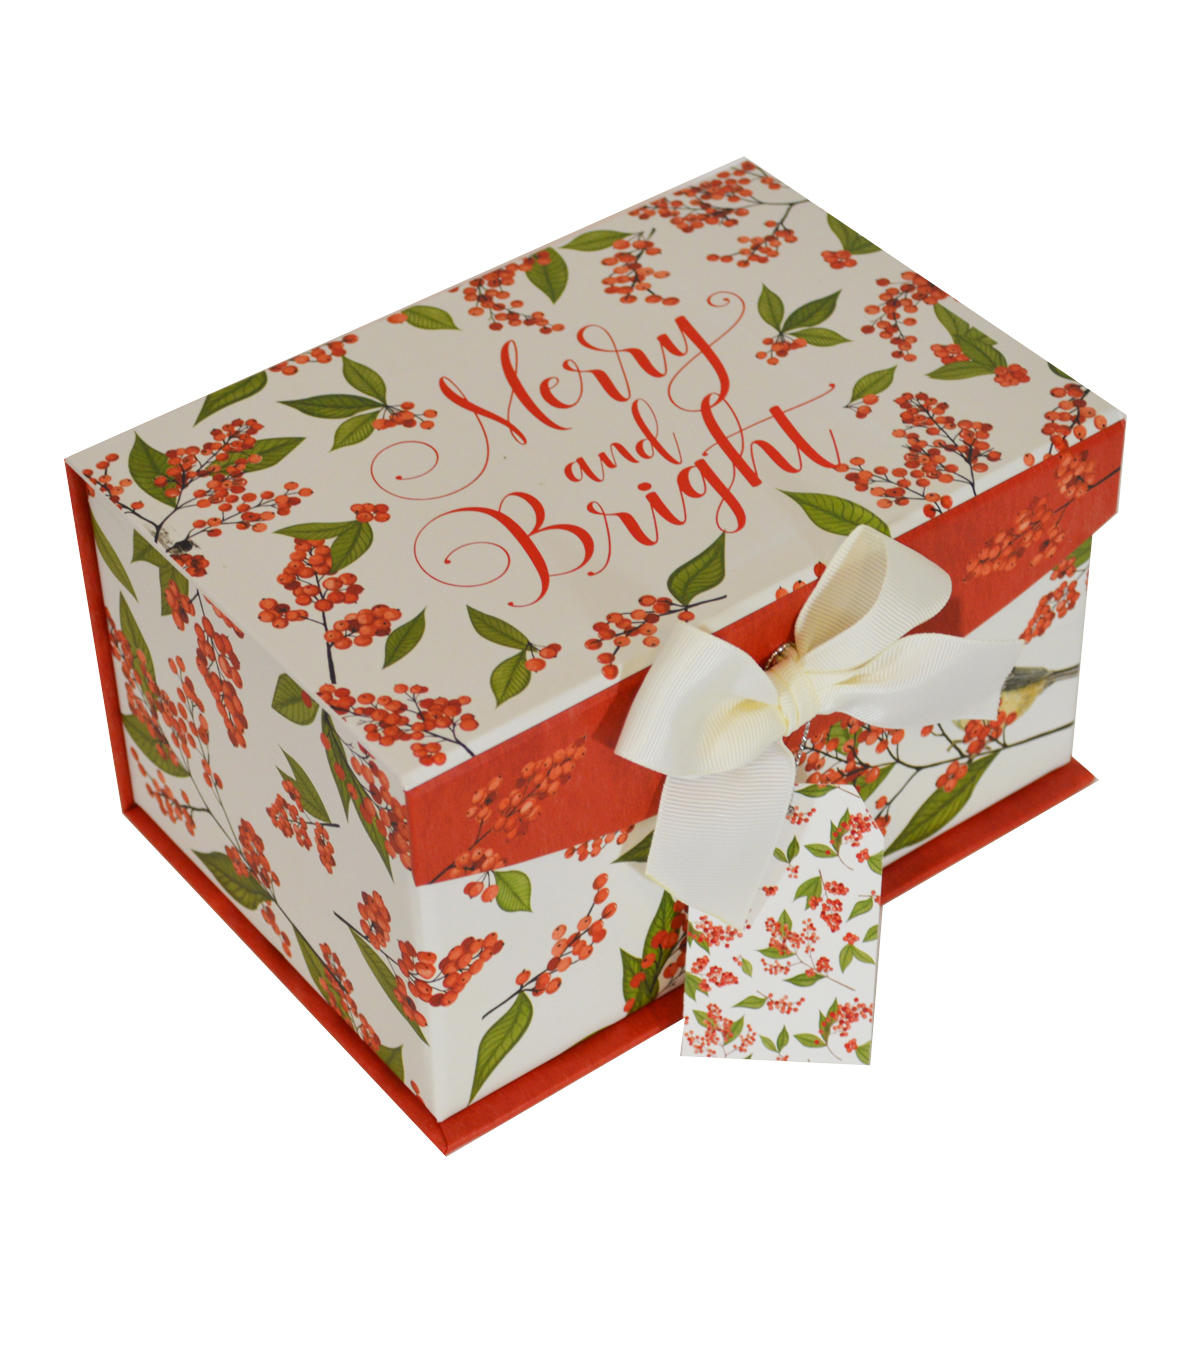 Maker\u0027s Holiday Small Flip Top Box-Wild Berries with Merry & Bright